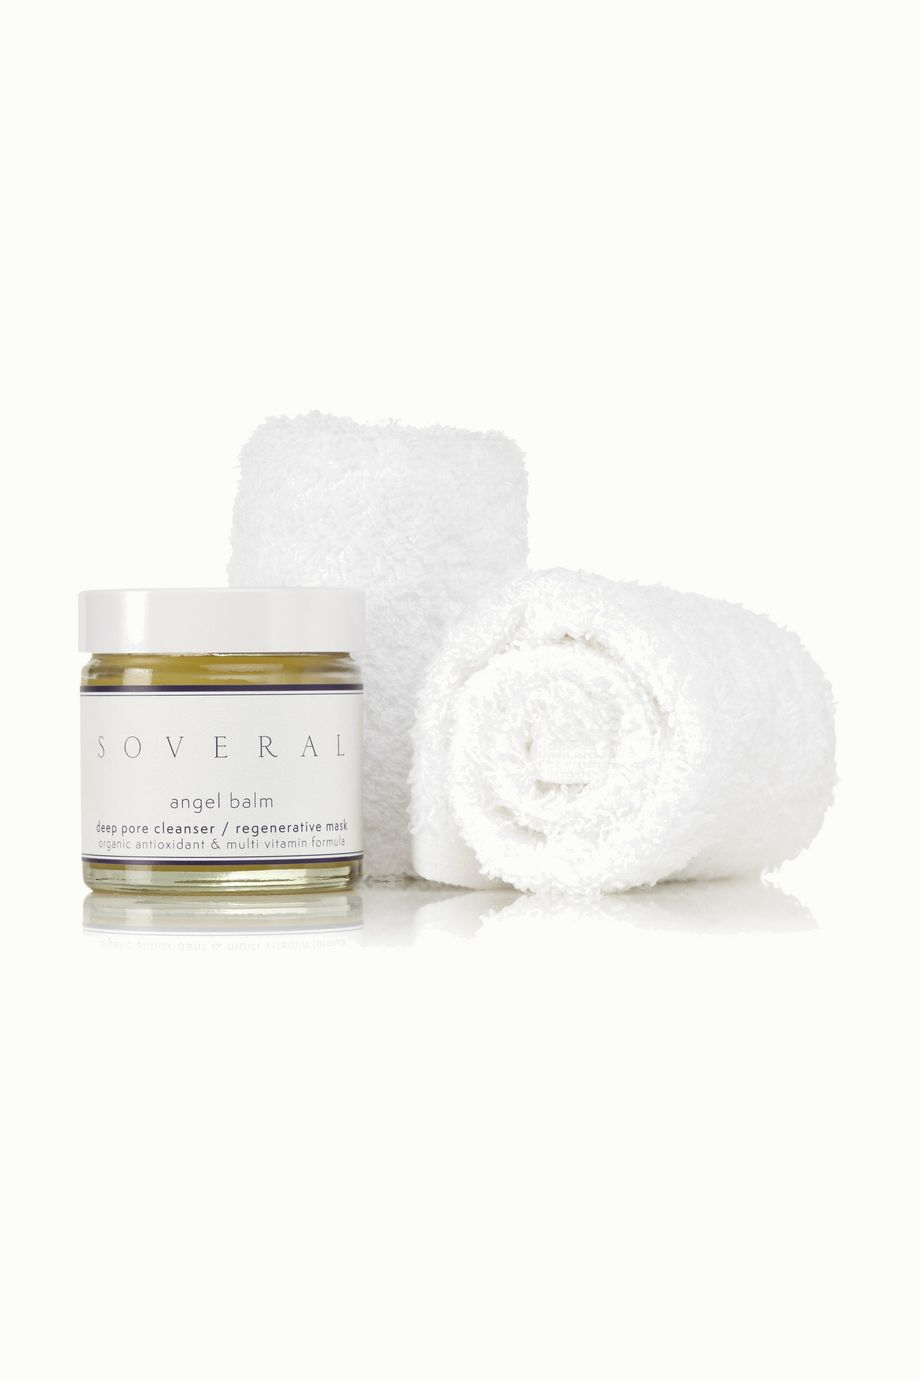 SOVERAL Angel Balm Deep Pore Cleanser and Regenerative Mask, 60 ml – Cleanser und Maske